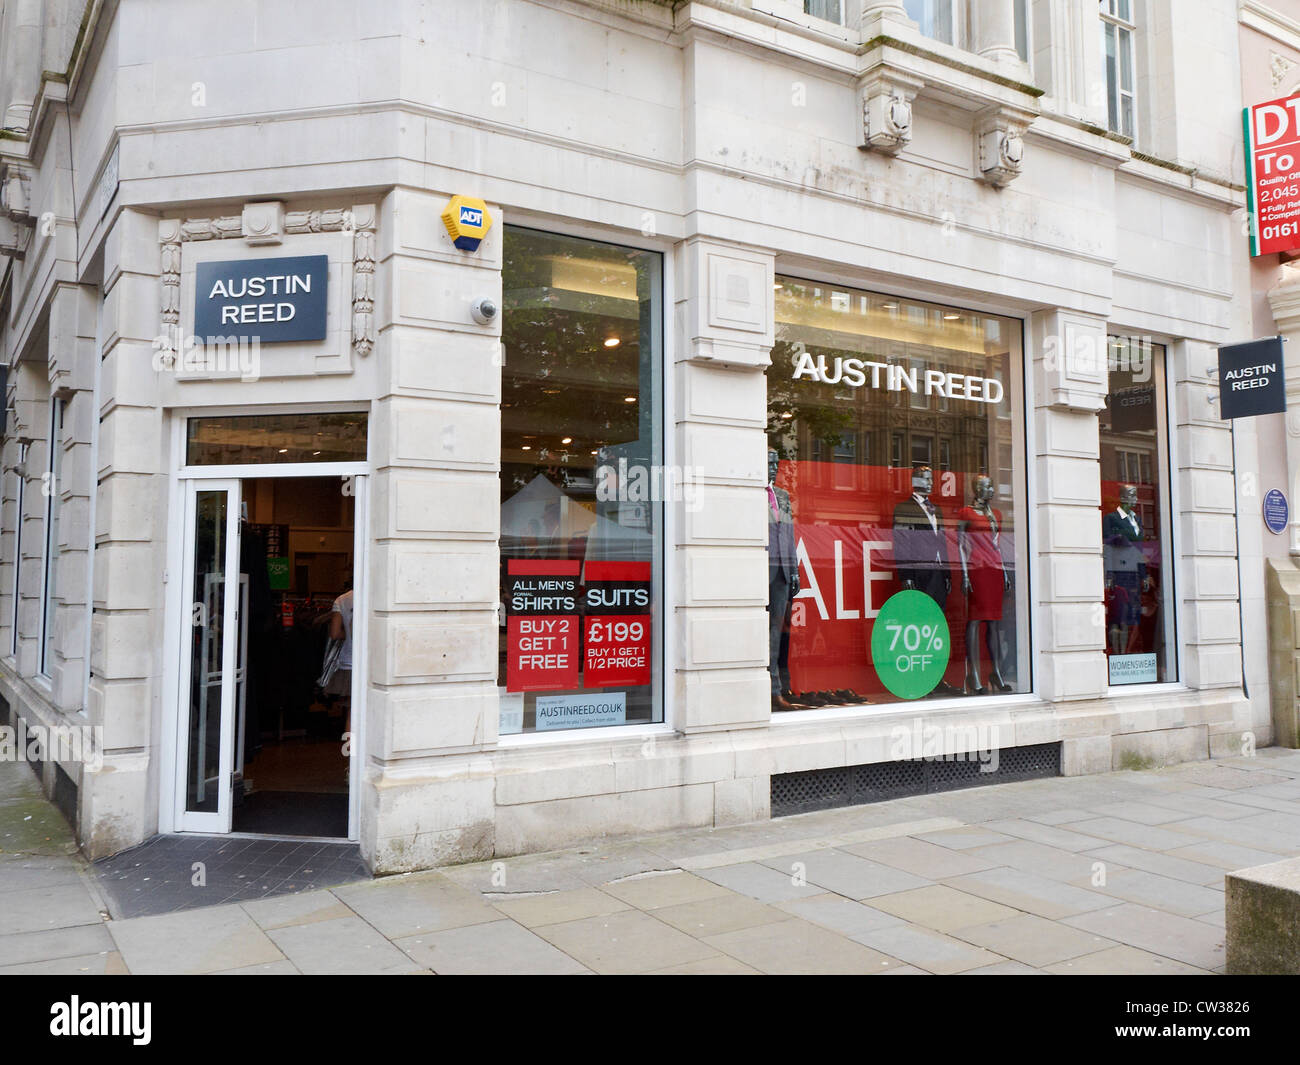 Austin Reed Store On St Ann S Square In Manchester Uk Stock Photo Alamy